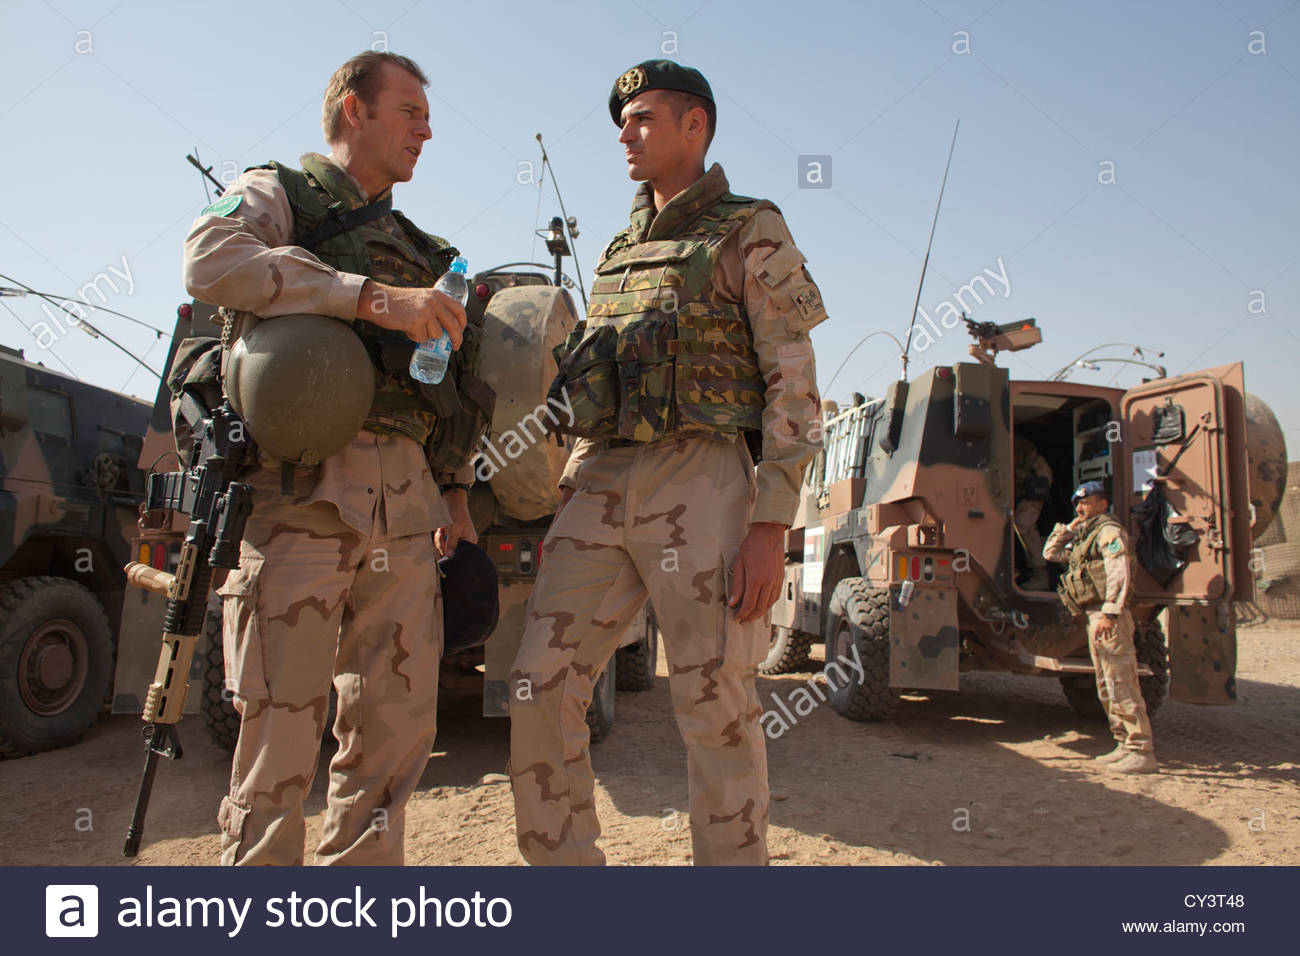 dutch-military-in-kunduz-province-afghanistan-colonel-de-jong-left-CY3T48